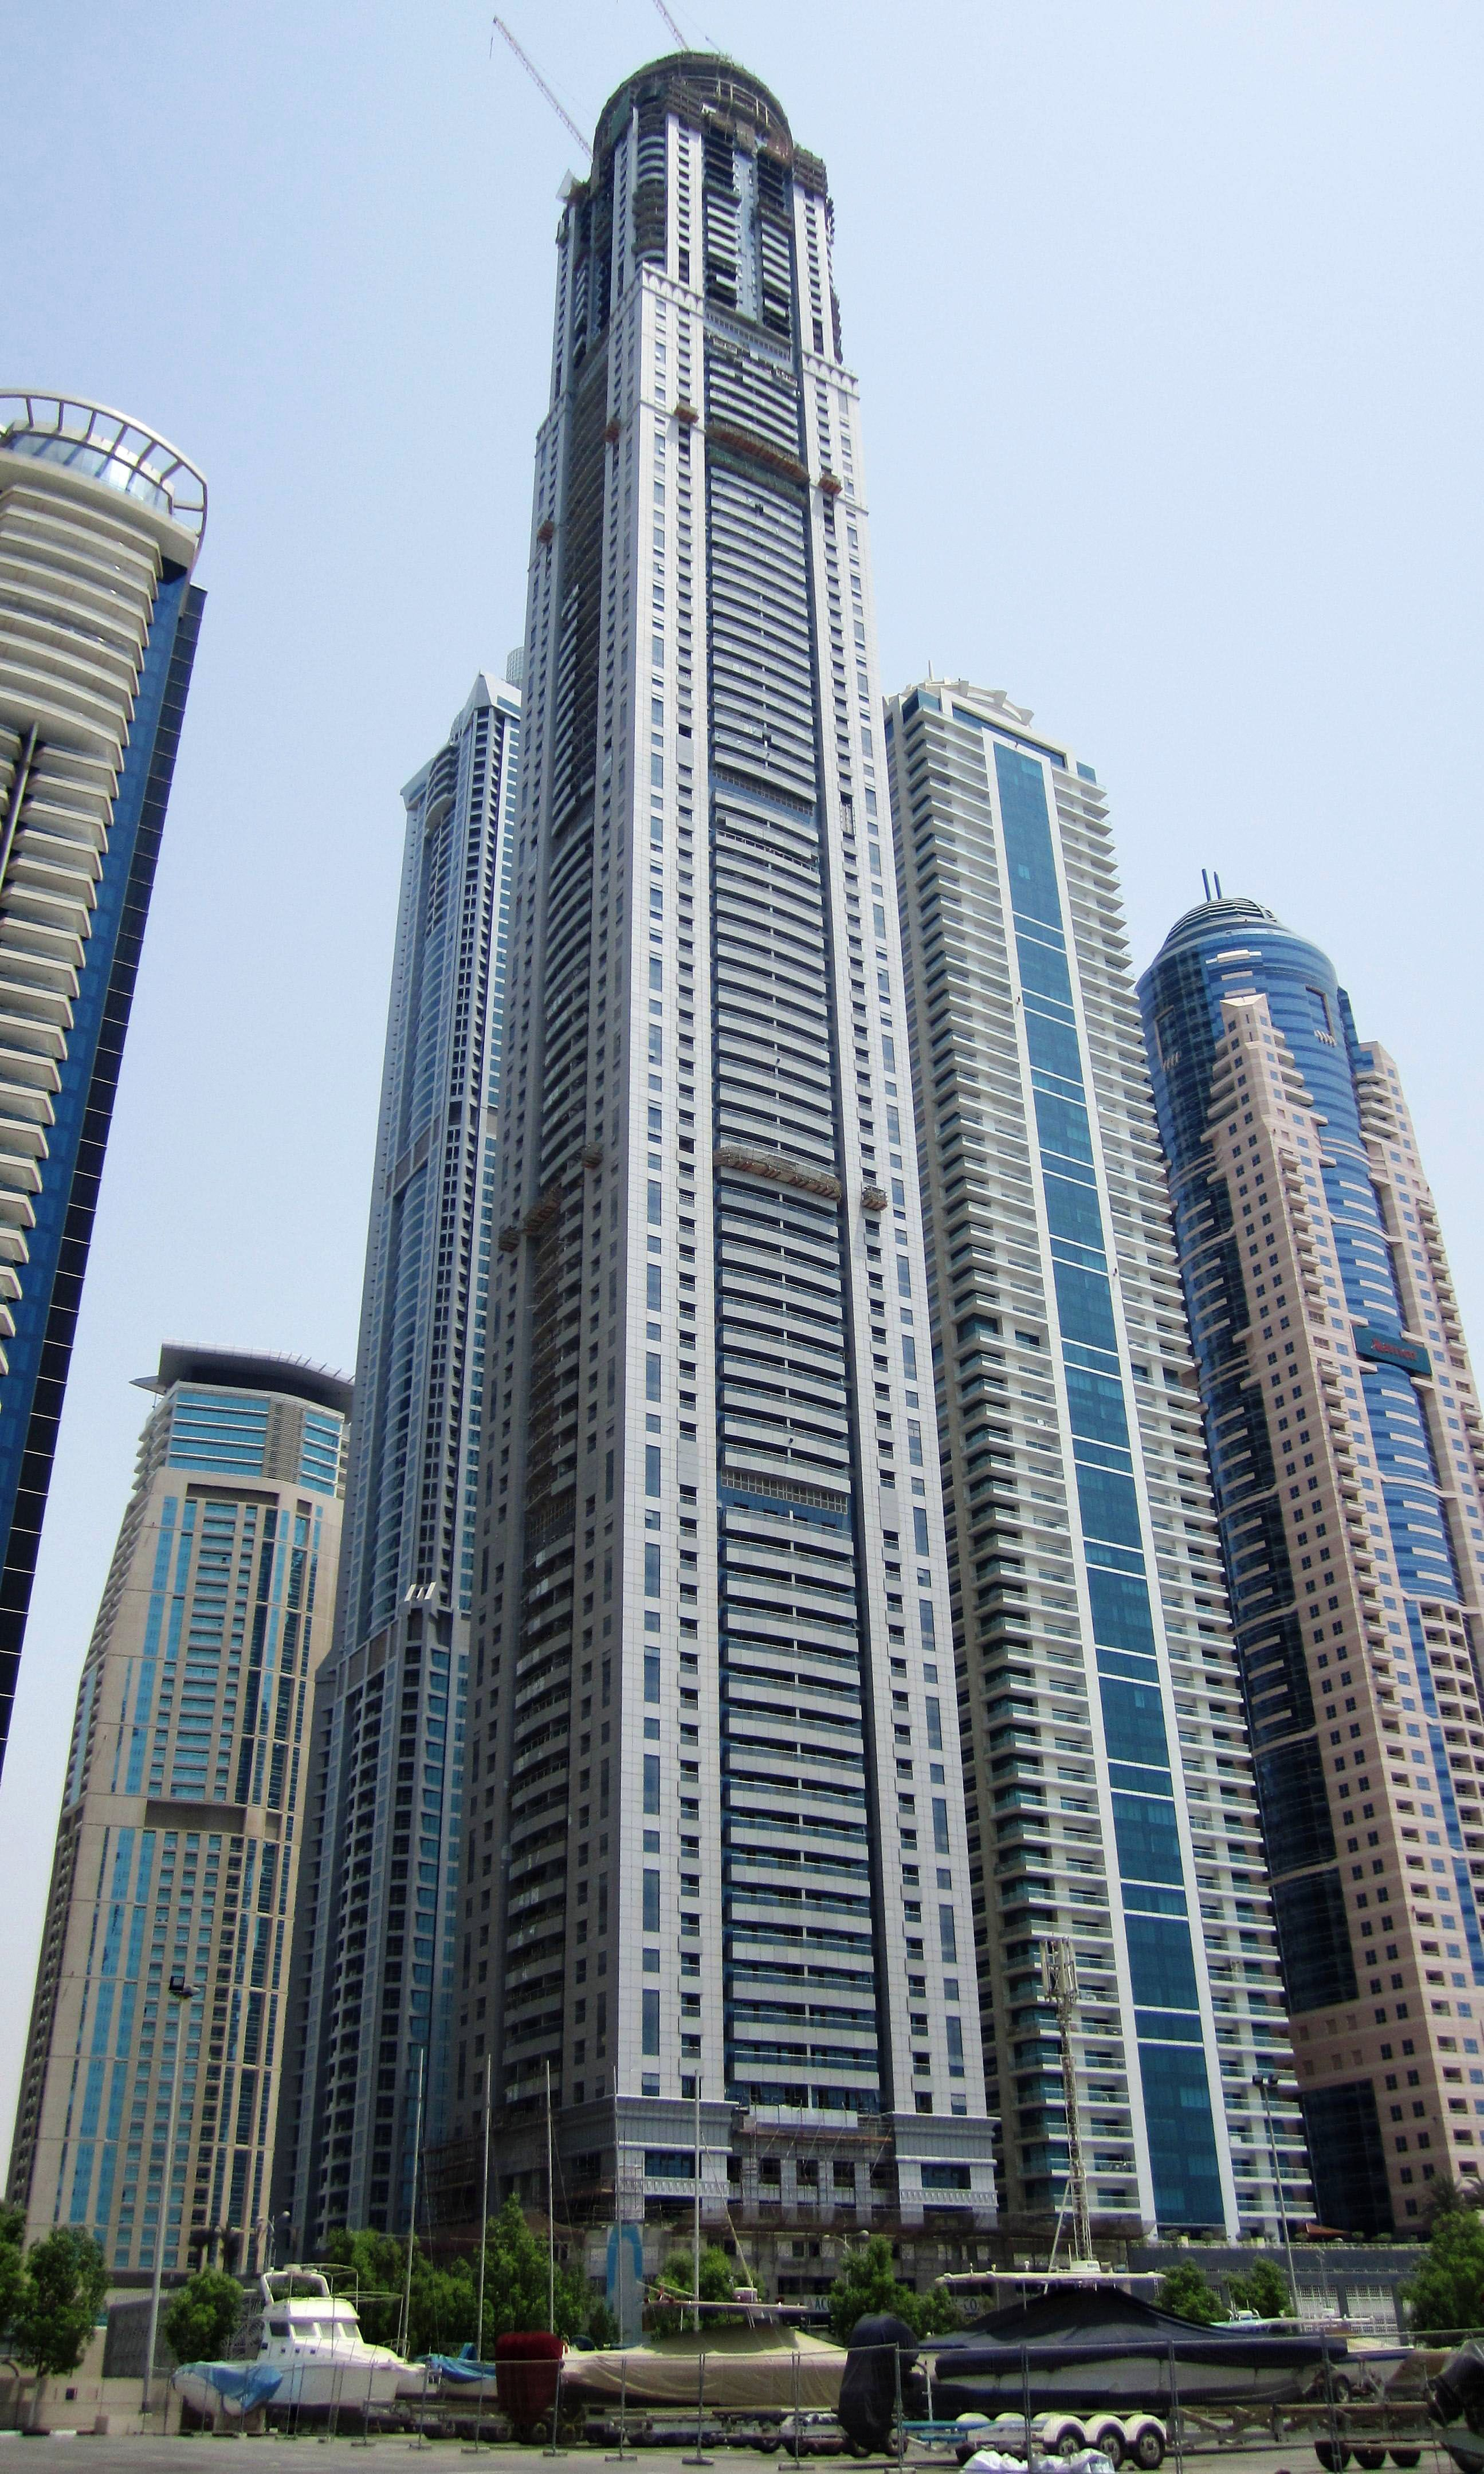 The Princess Tower Is A 101 Storey 414 M 1 358 Ft Tall Residential Skyscraper Located In The Marina District Of Dubai Uae Princess Tower Has Been Arkitektur